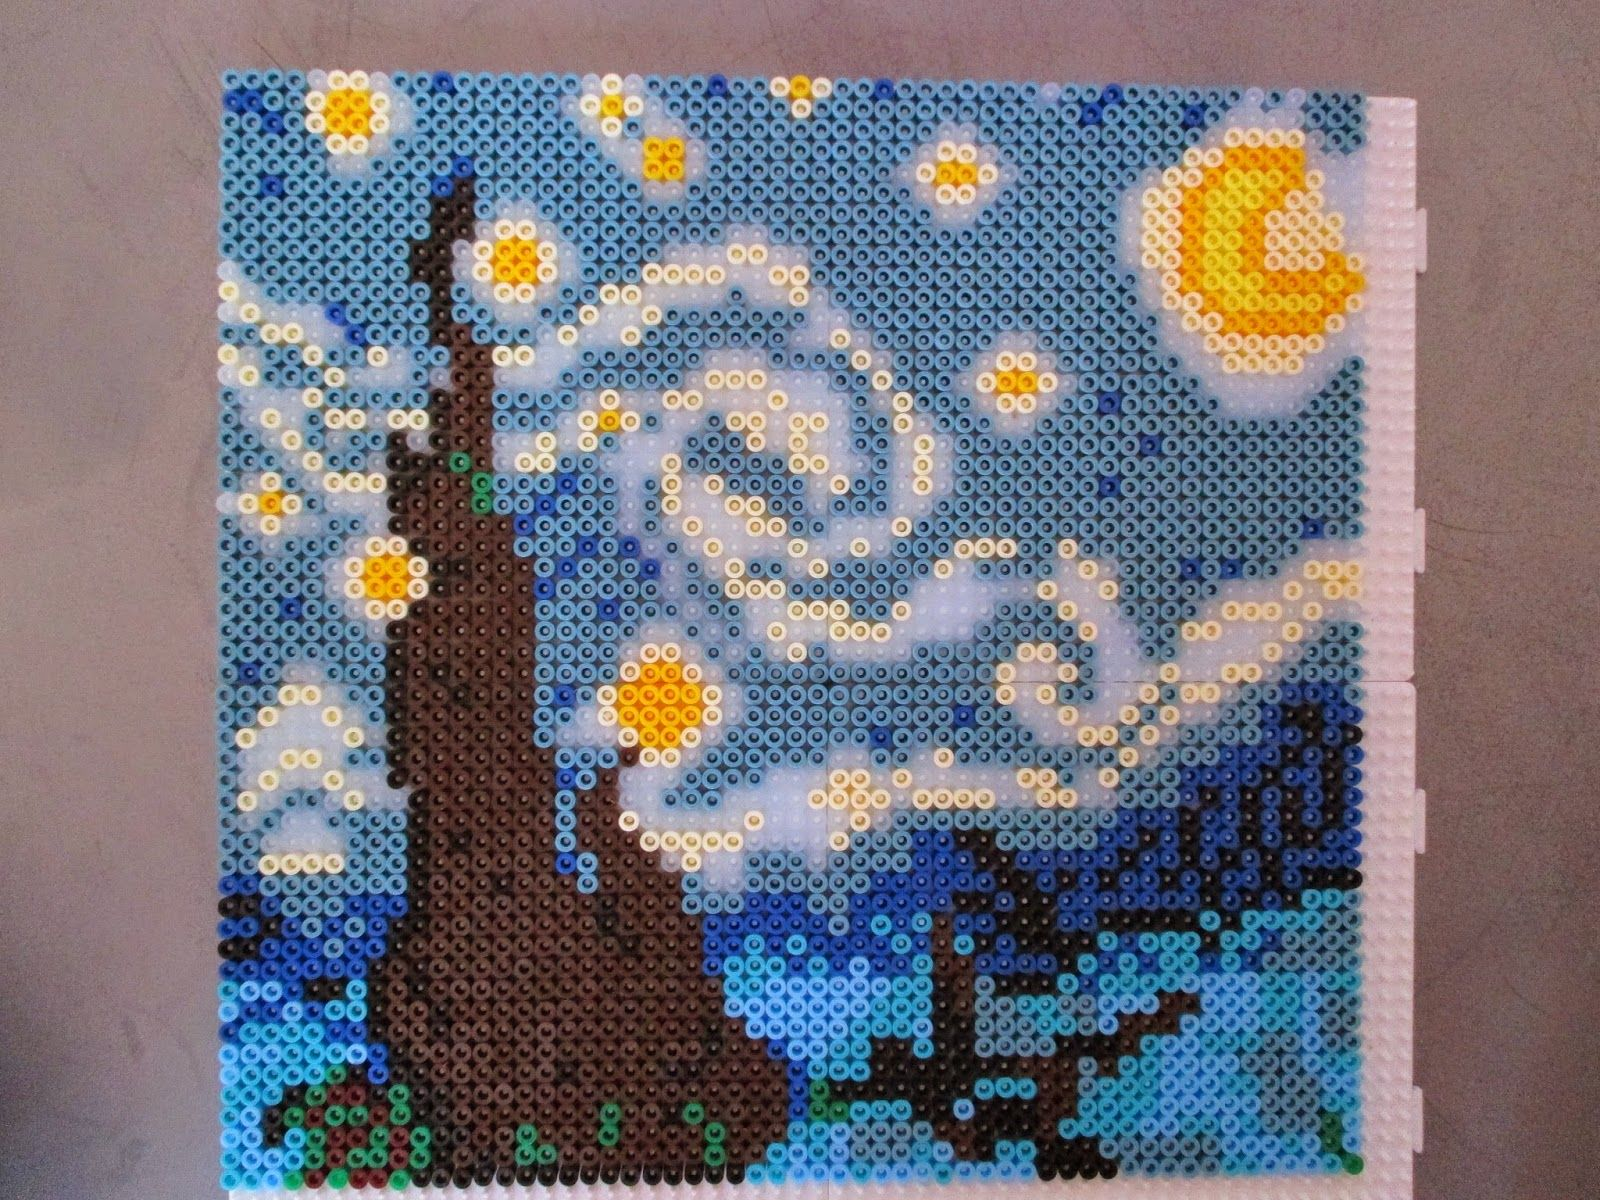 17 best images about starry night by vincent van gogh starry night by van gogh hama perler beads by sebastien herpin